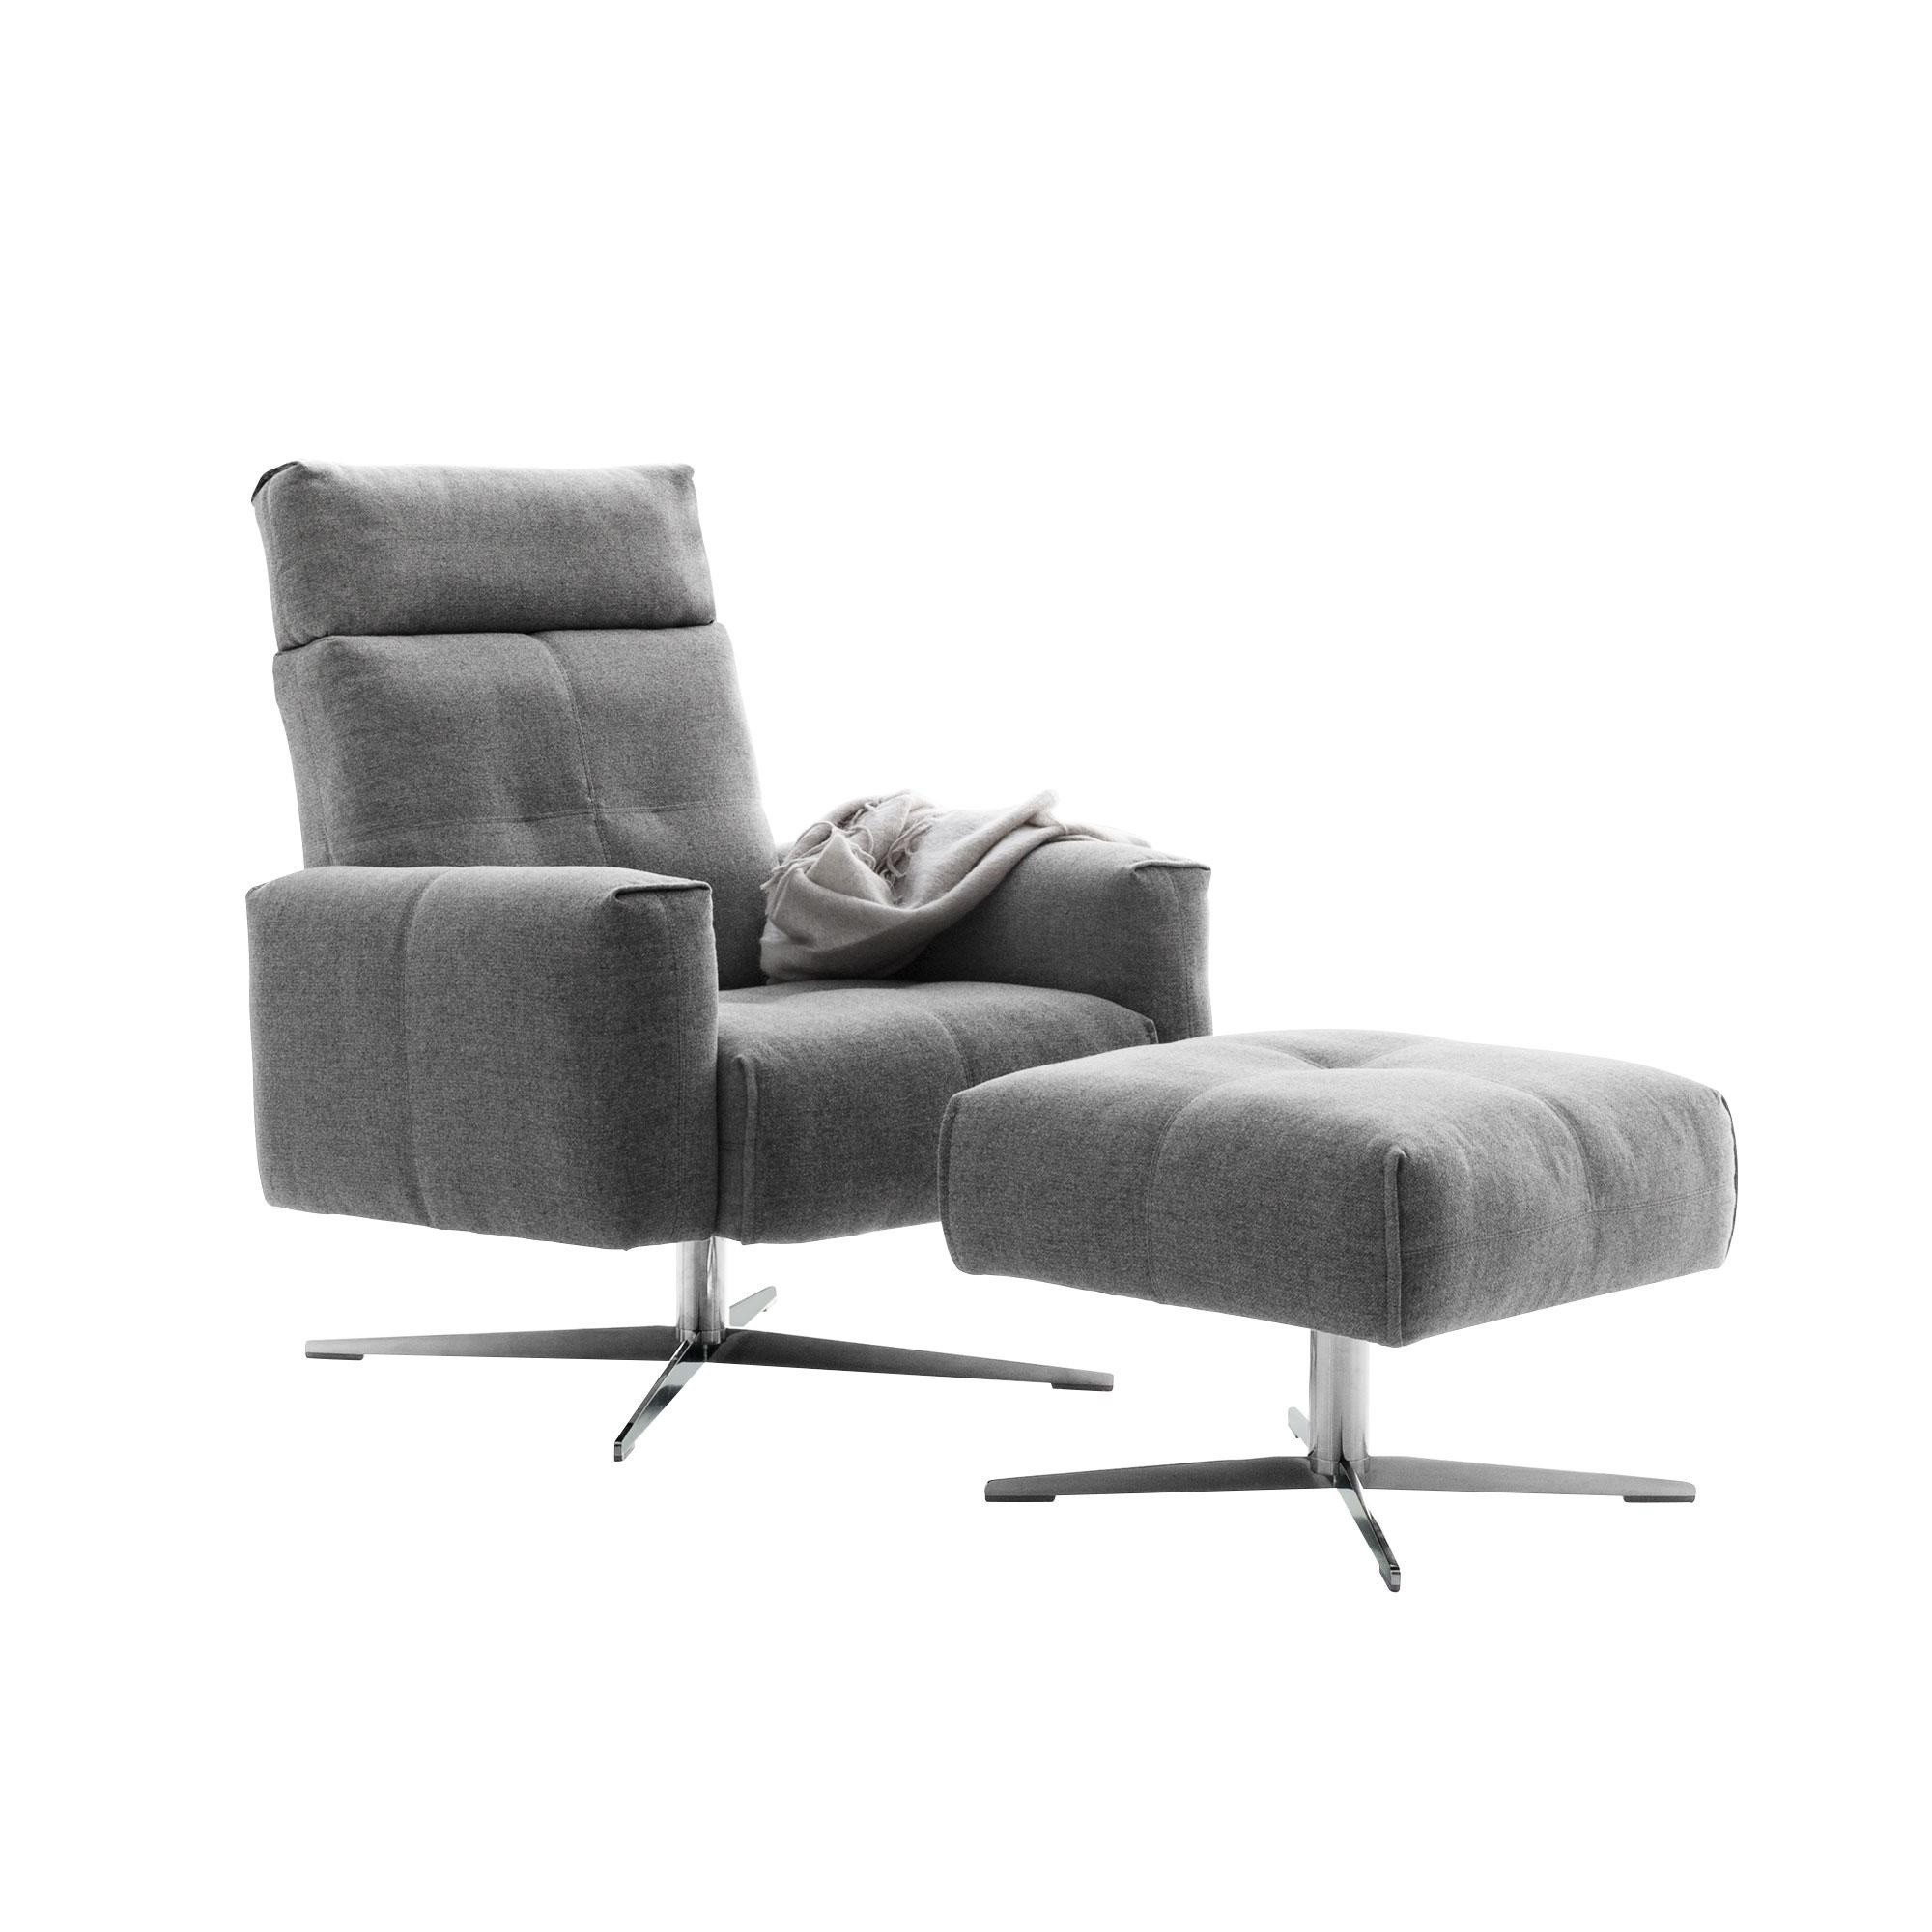 Rolf Benz 50 Sessel Mit Hocker Ambientedirect